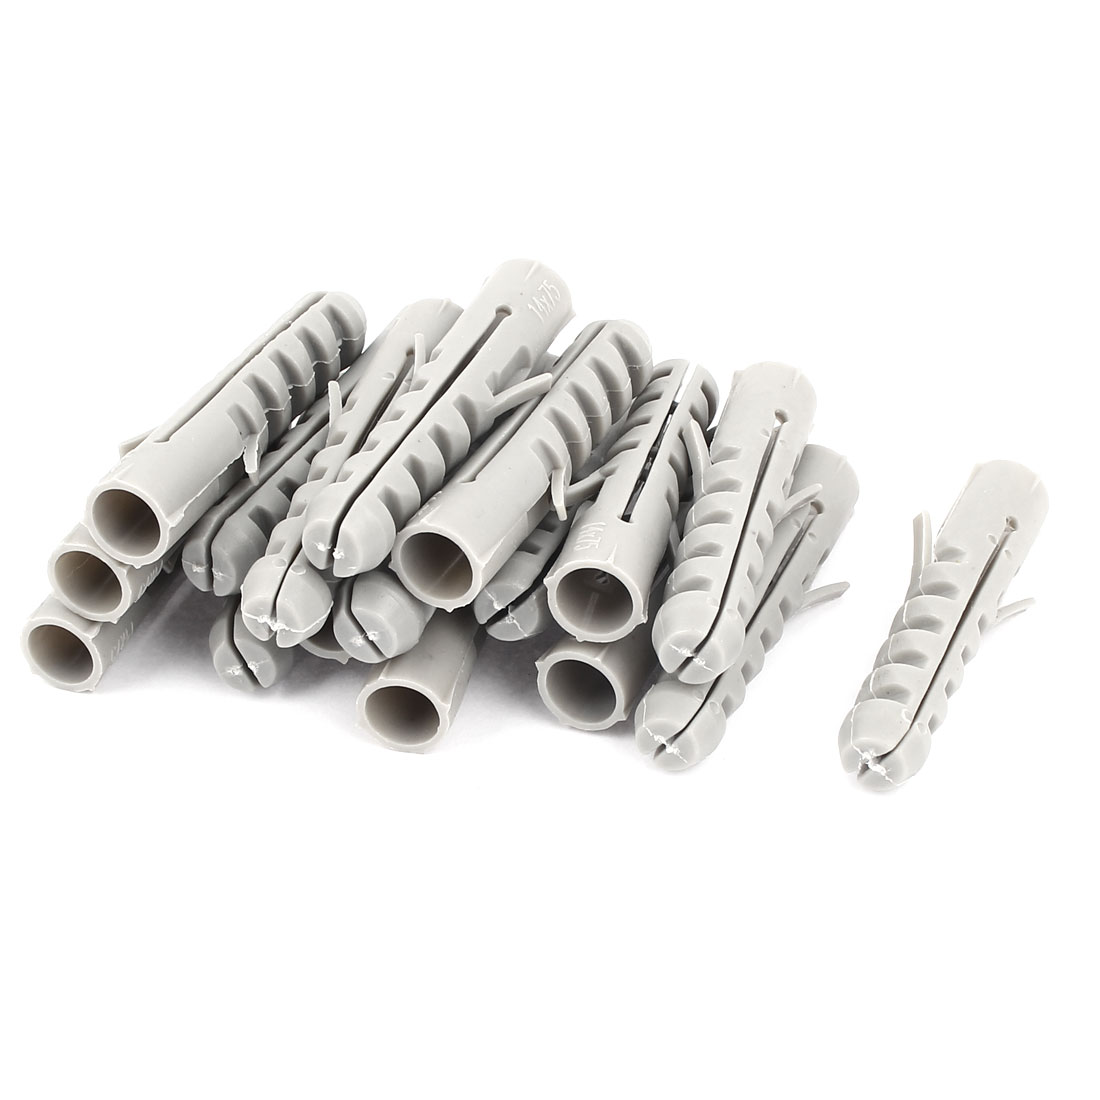 17pcs 14mm x 70mm Plastic Expansion Nails Hollow Wall Anchor Expandable Tube Connector Screws Bolts